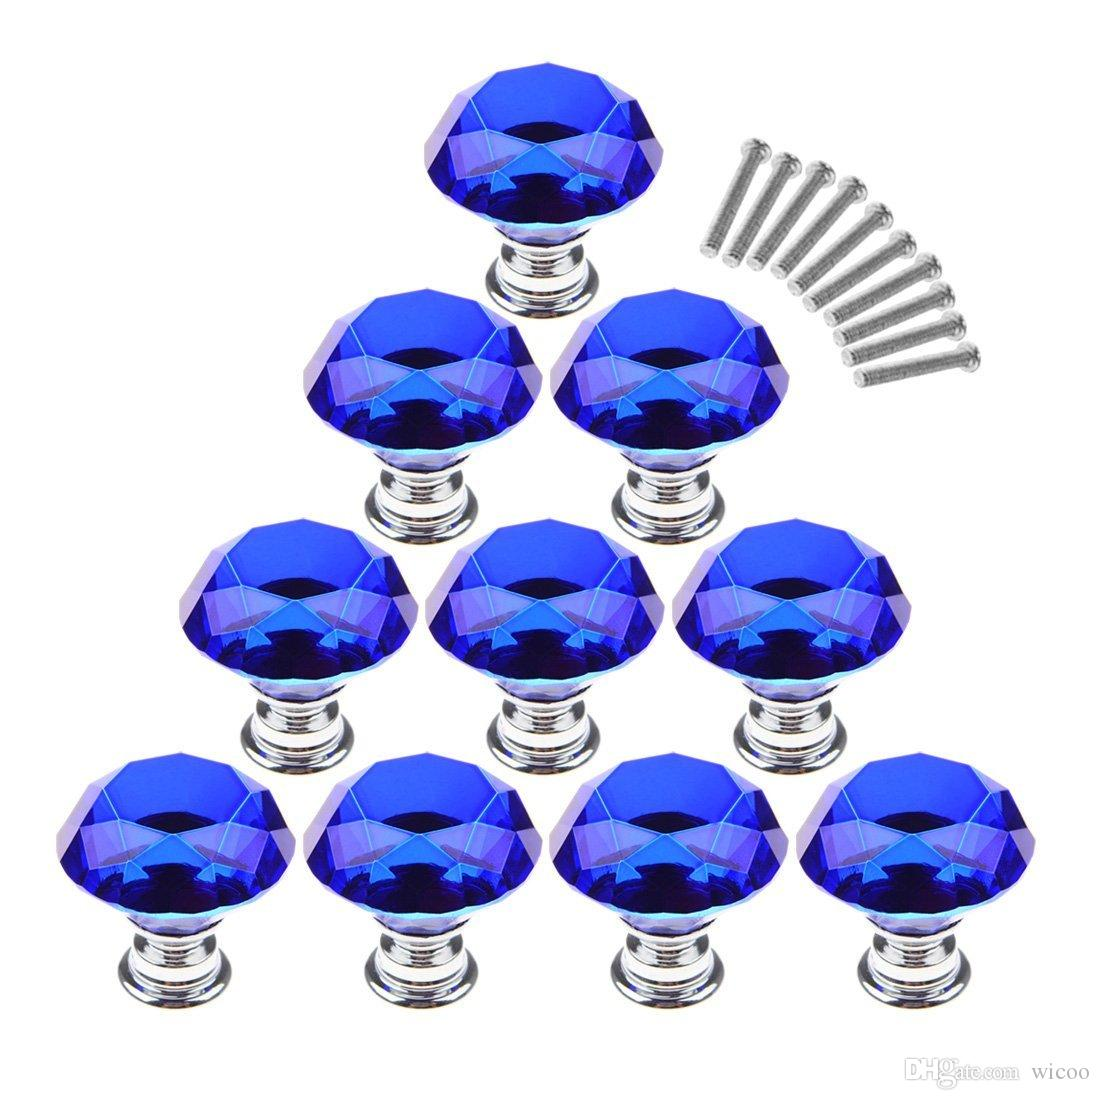 10Pcs/Set 30mm Crystal Glass Diamond Shape Cabinet Knobs Cupboard Drawer Pull Handles - Dark Blue